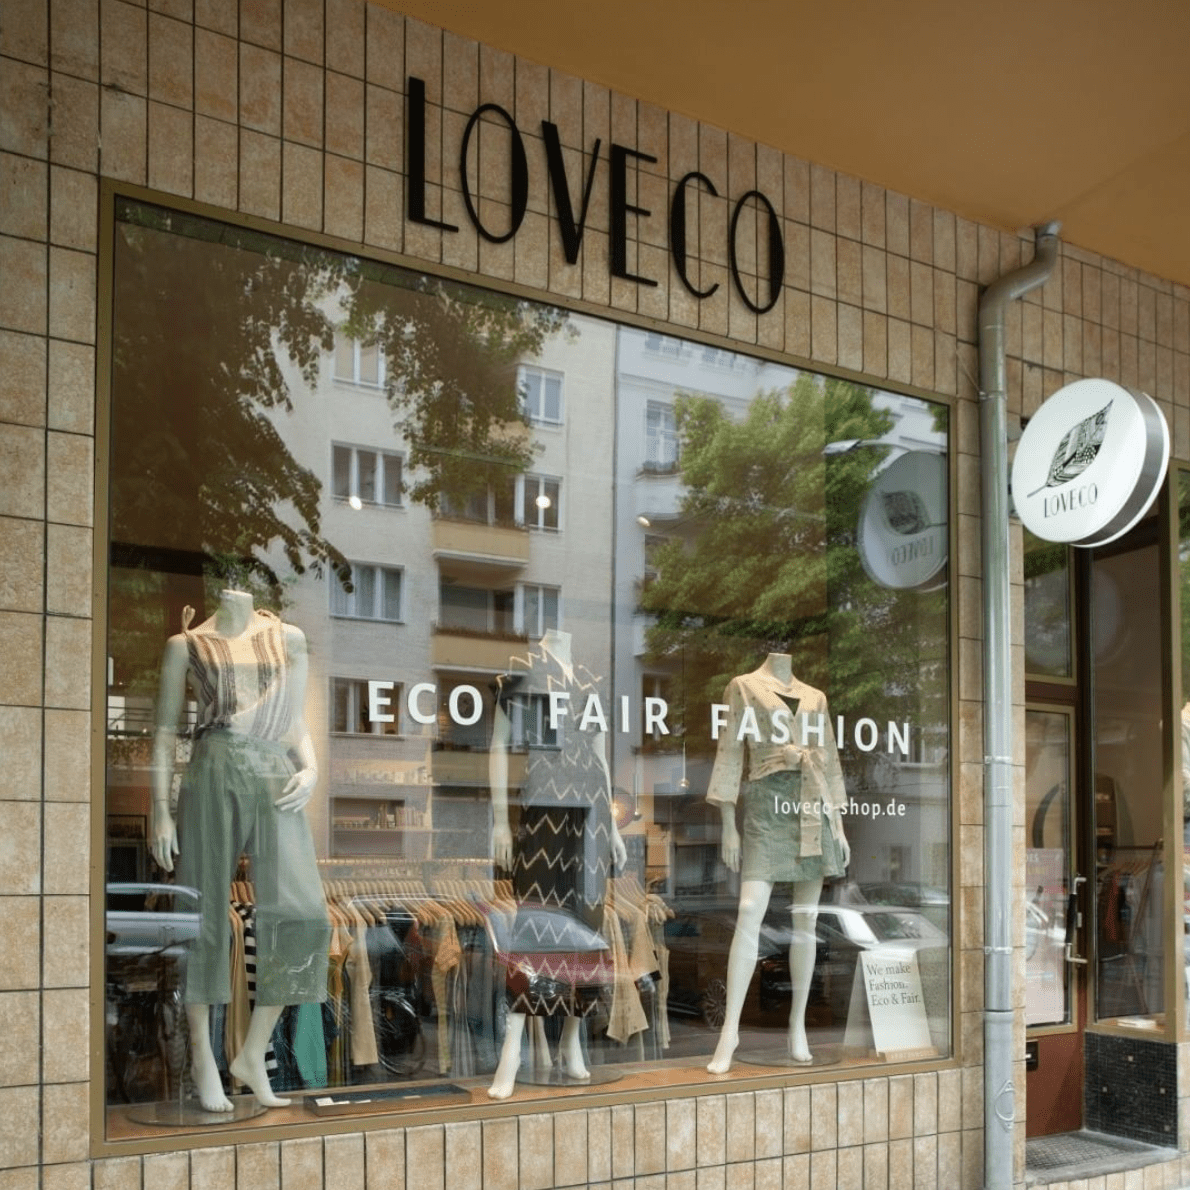 Loveco Shop